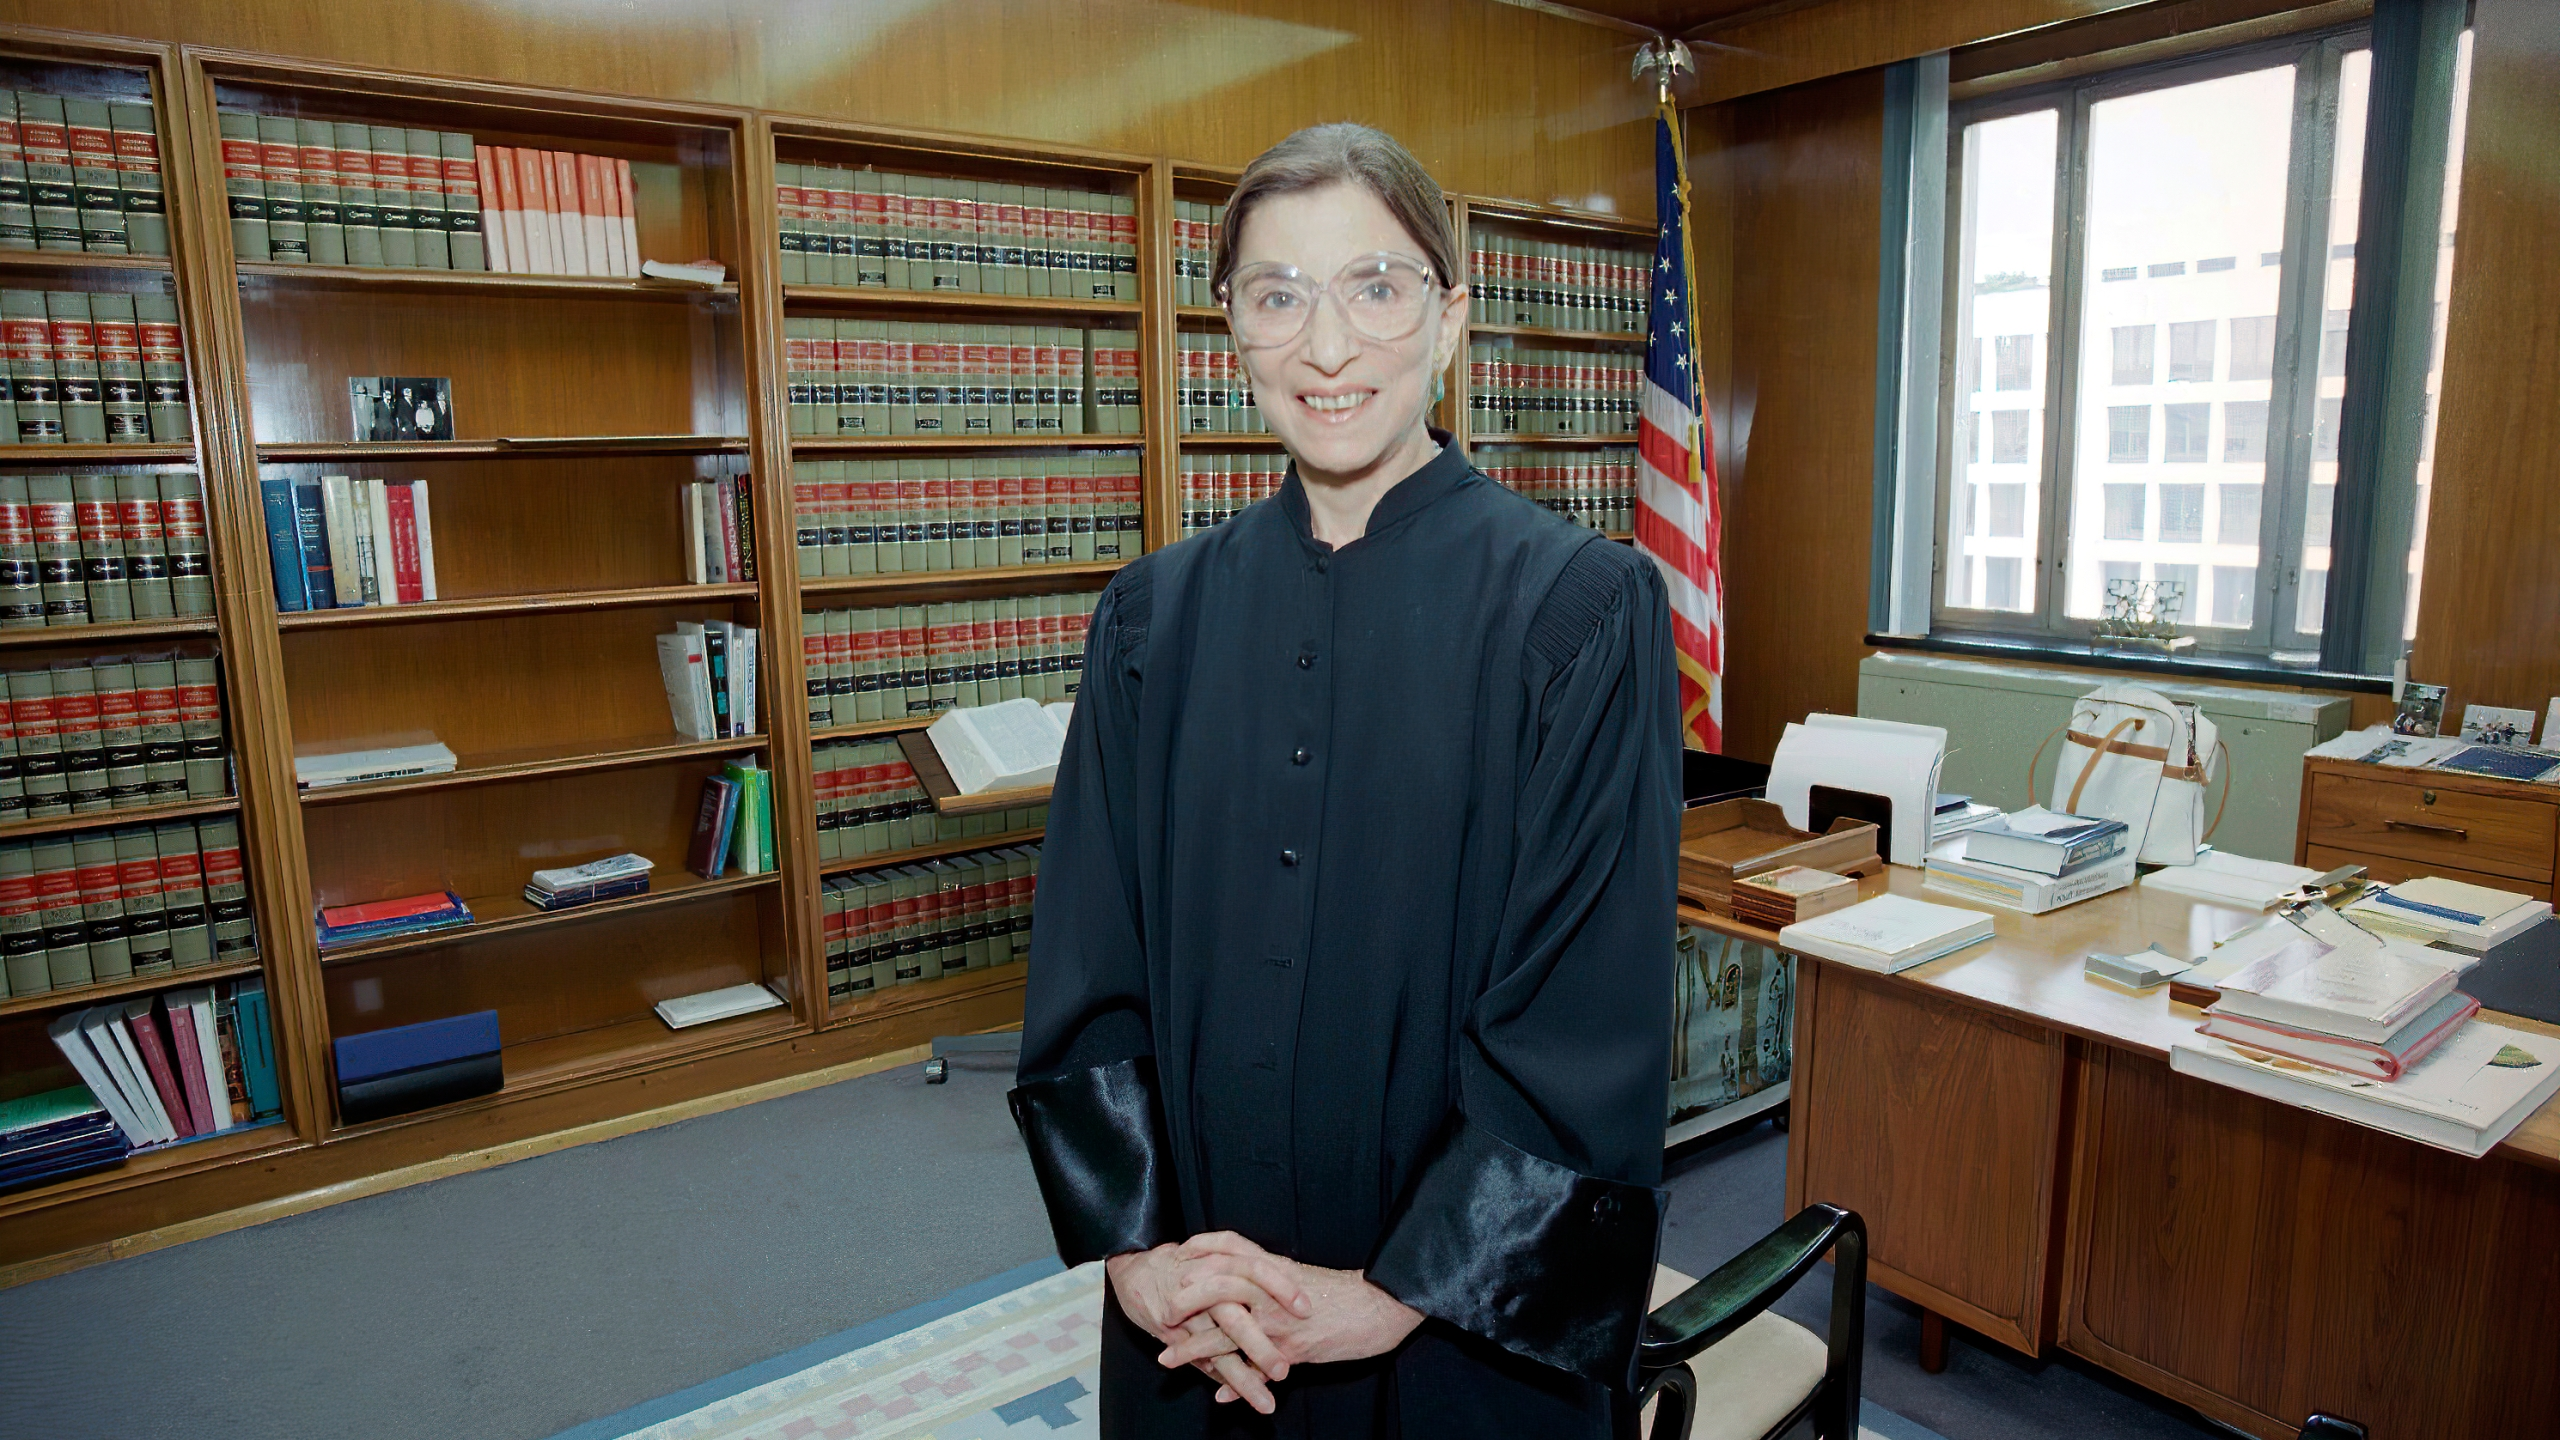 In this Aug. 3, 1993, file photo, then-Judge Ruth Bader Ginsburg poses in her robe in her office at U.S. District Court in Washington. (AP Photo/Doug Mills, File)